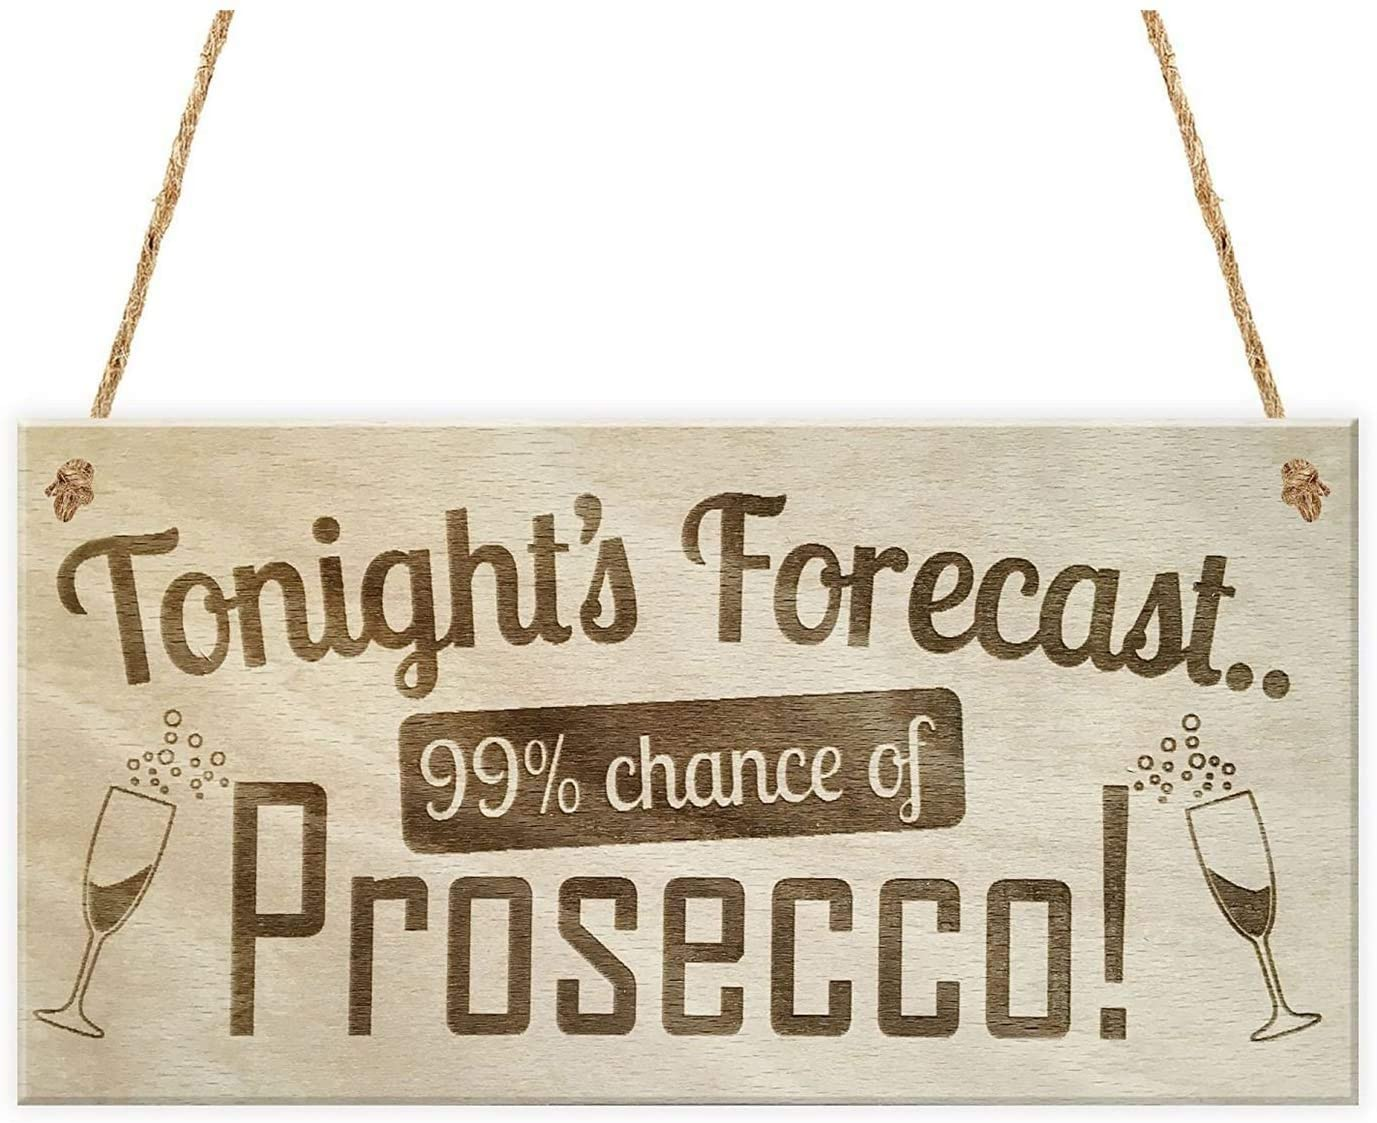 MAIYUAN Tonight's Forecast Prosecco Wine Alcohol Hanging Wood Plaque Friendship Gift Signs 12x6 Inches(CYL1927)